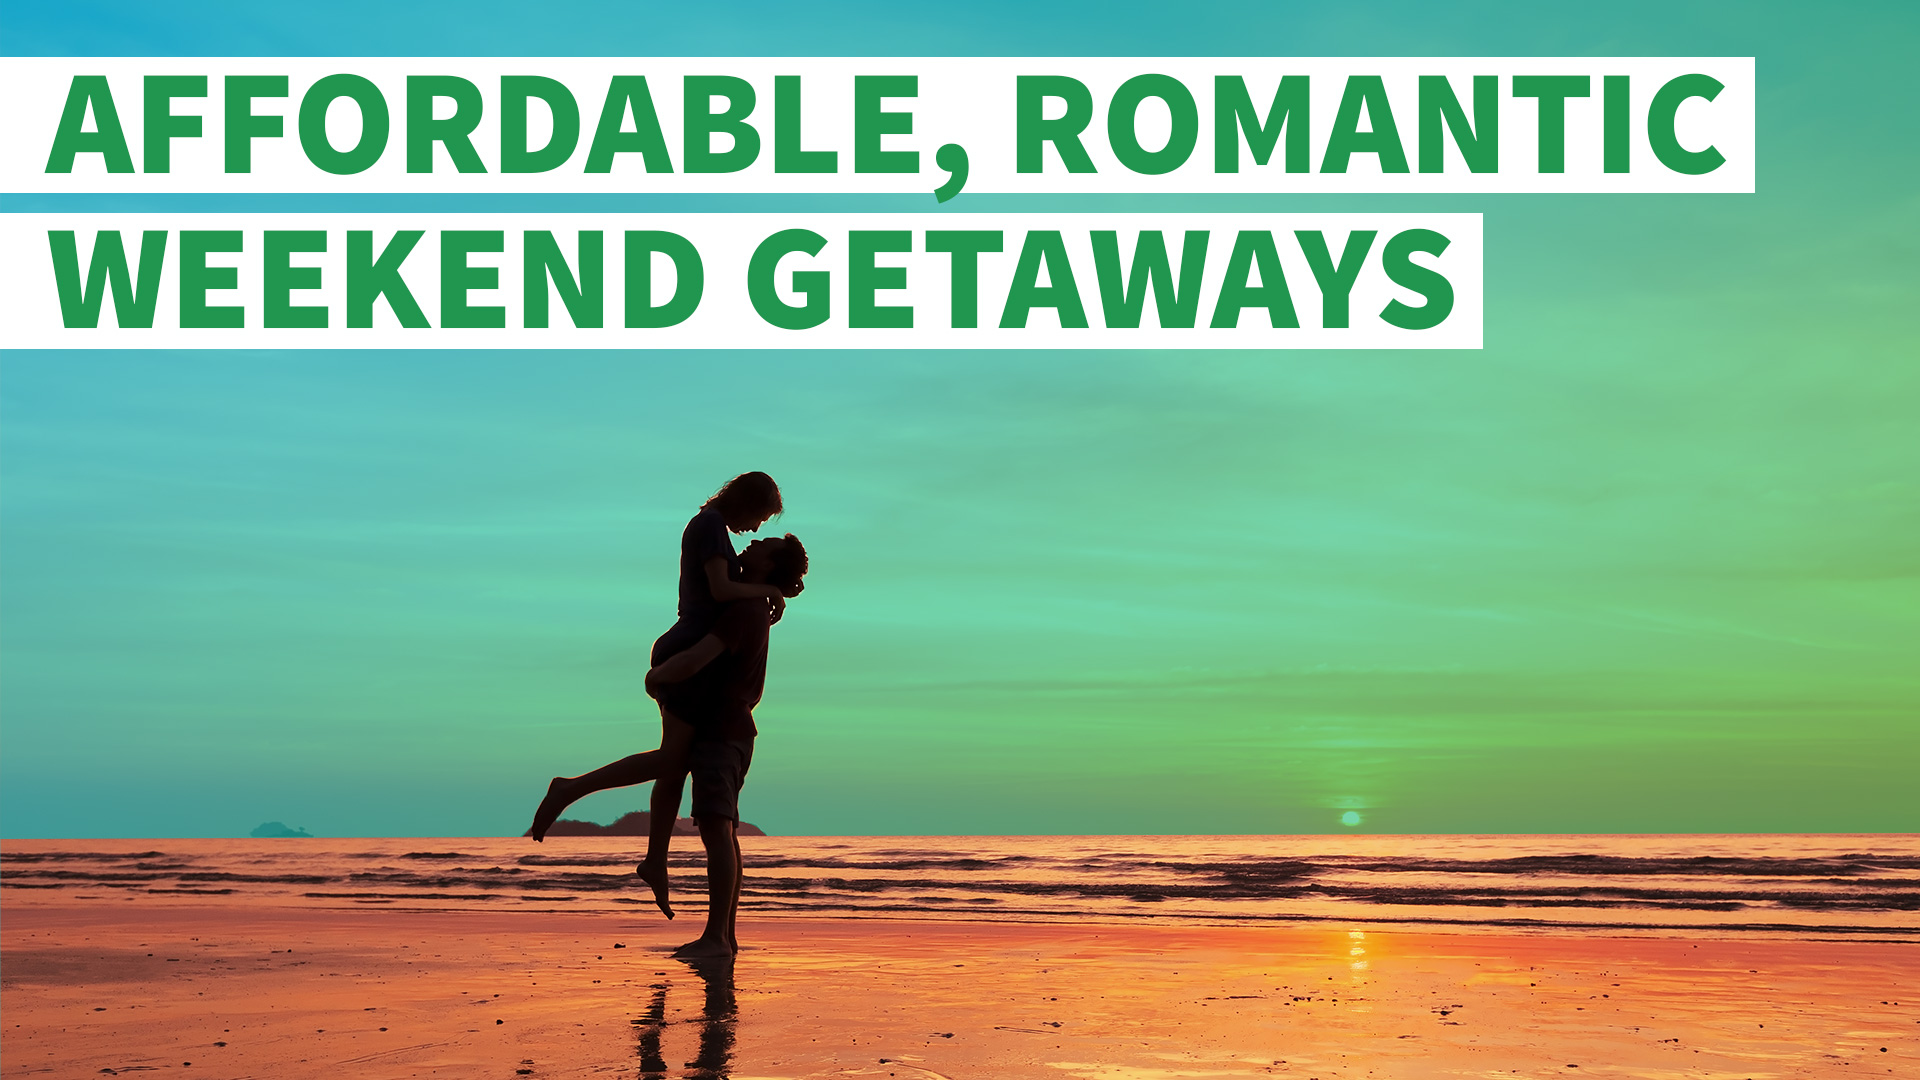 7 affordable romantic weekend getaways